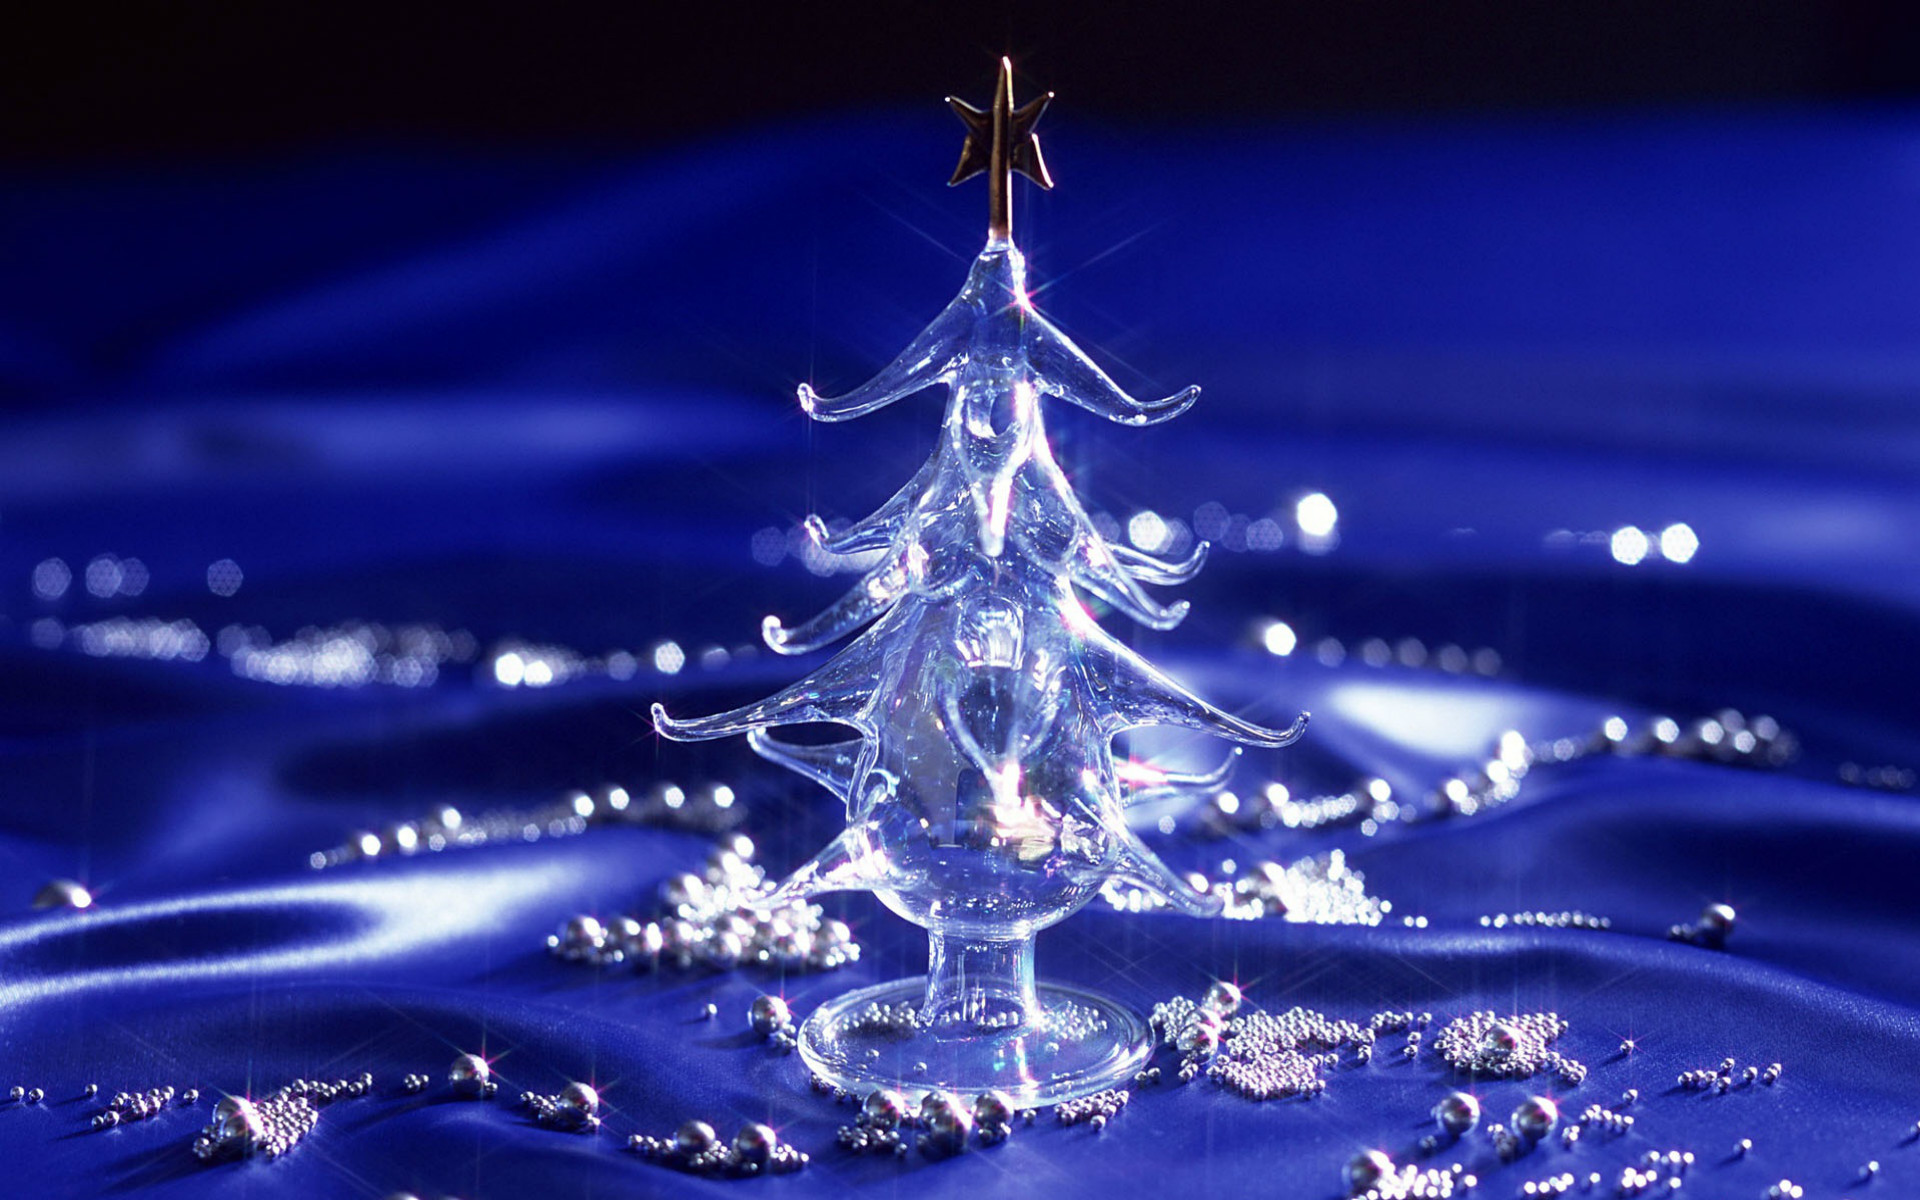 1920x1200 christmas background images christmas desktop wallpaper christmas tree  wallpaper free christmas wallpaper backgrounds merry christmas wallpaper  2016-11-14